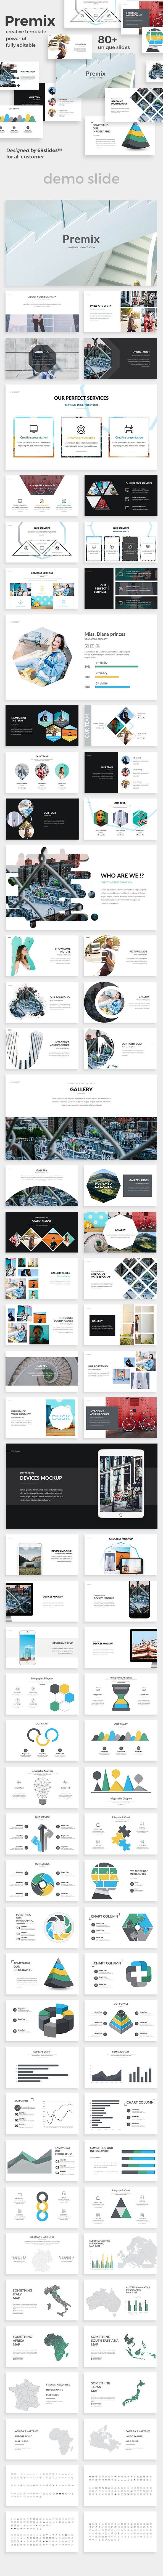 GraphicRiver Premix Creative Google Slide Template 20823989